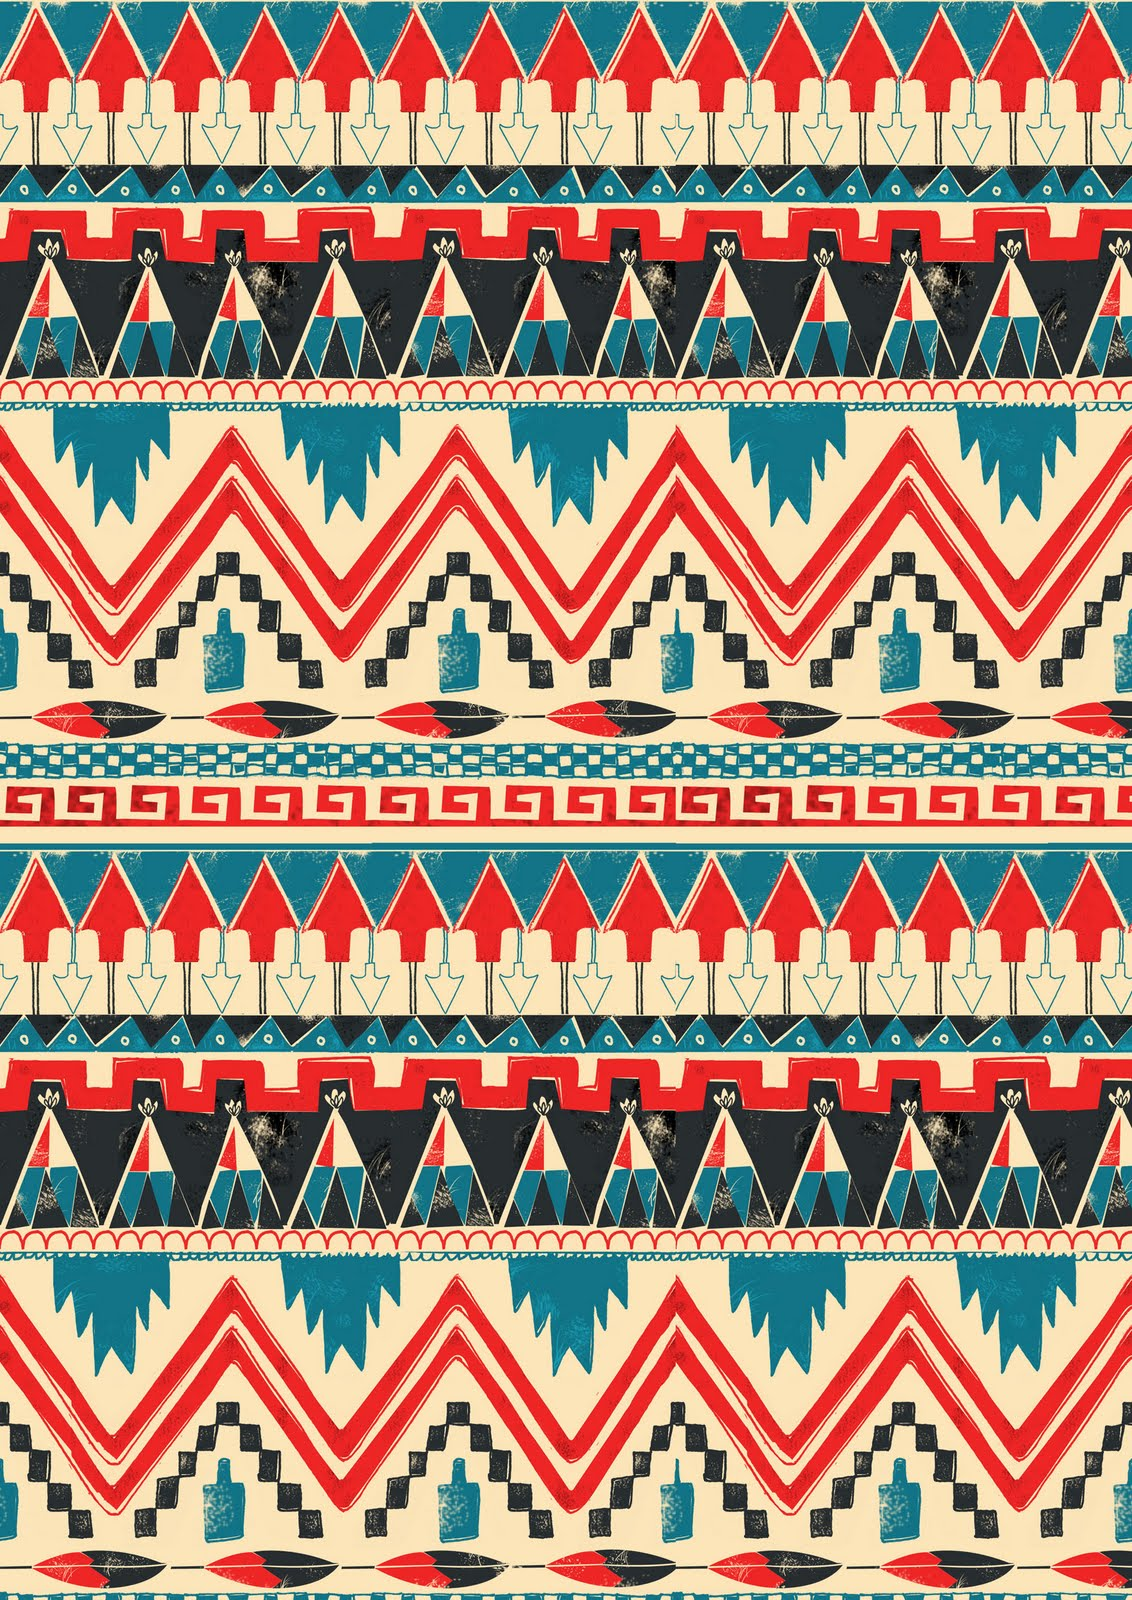 Kiley Victoria Illustration: more patterns...